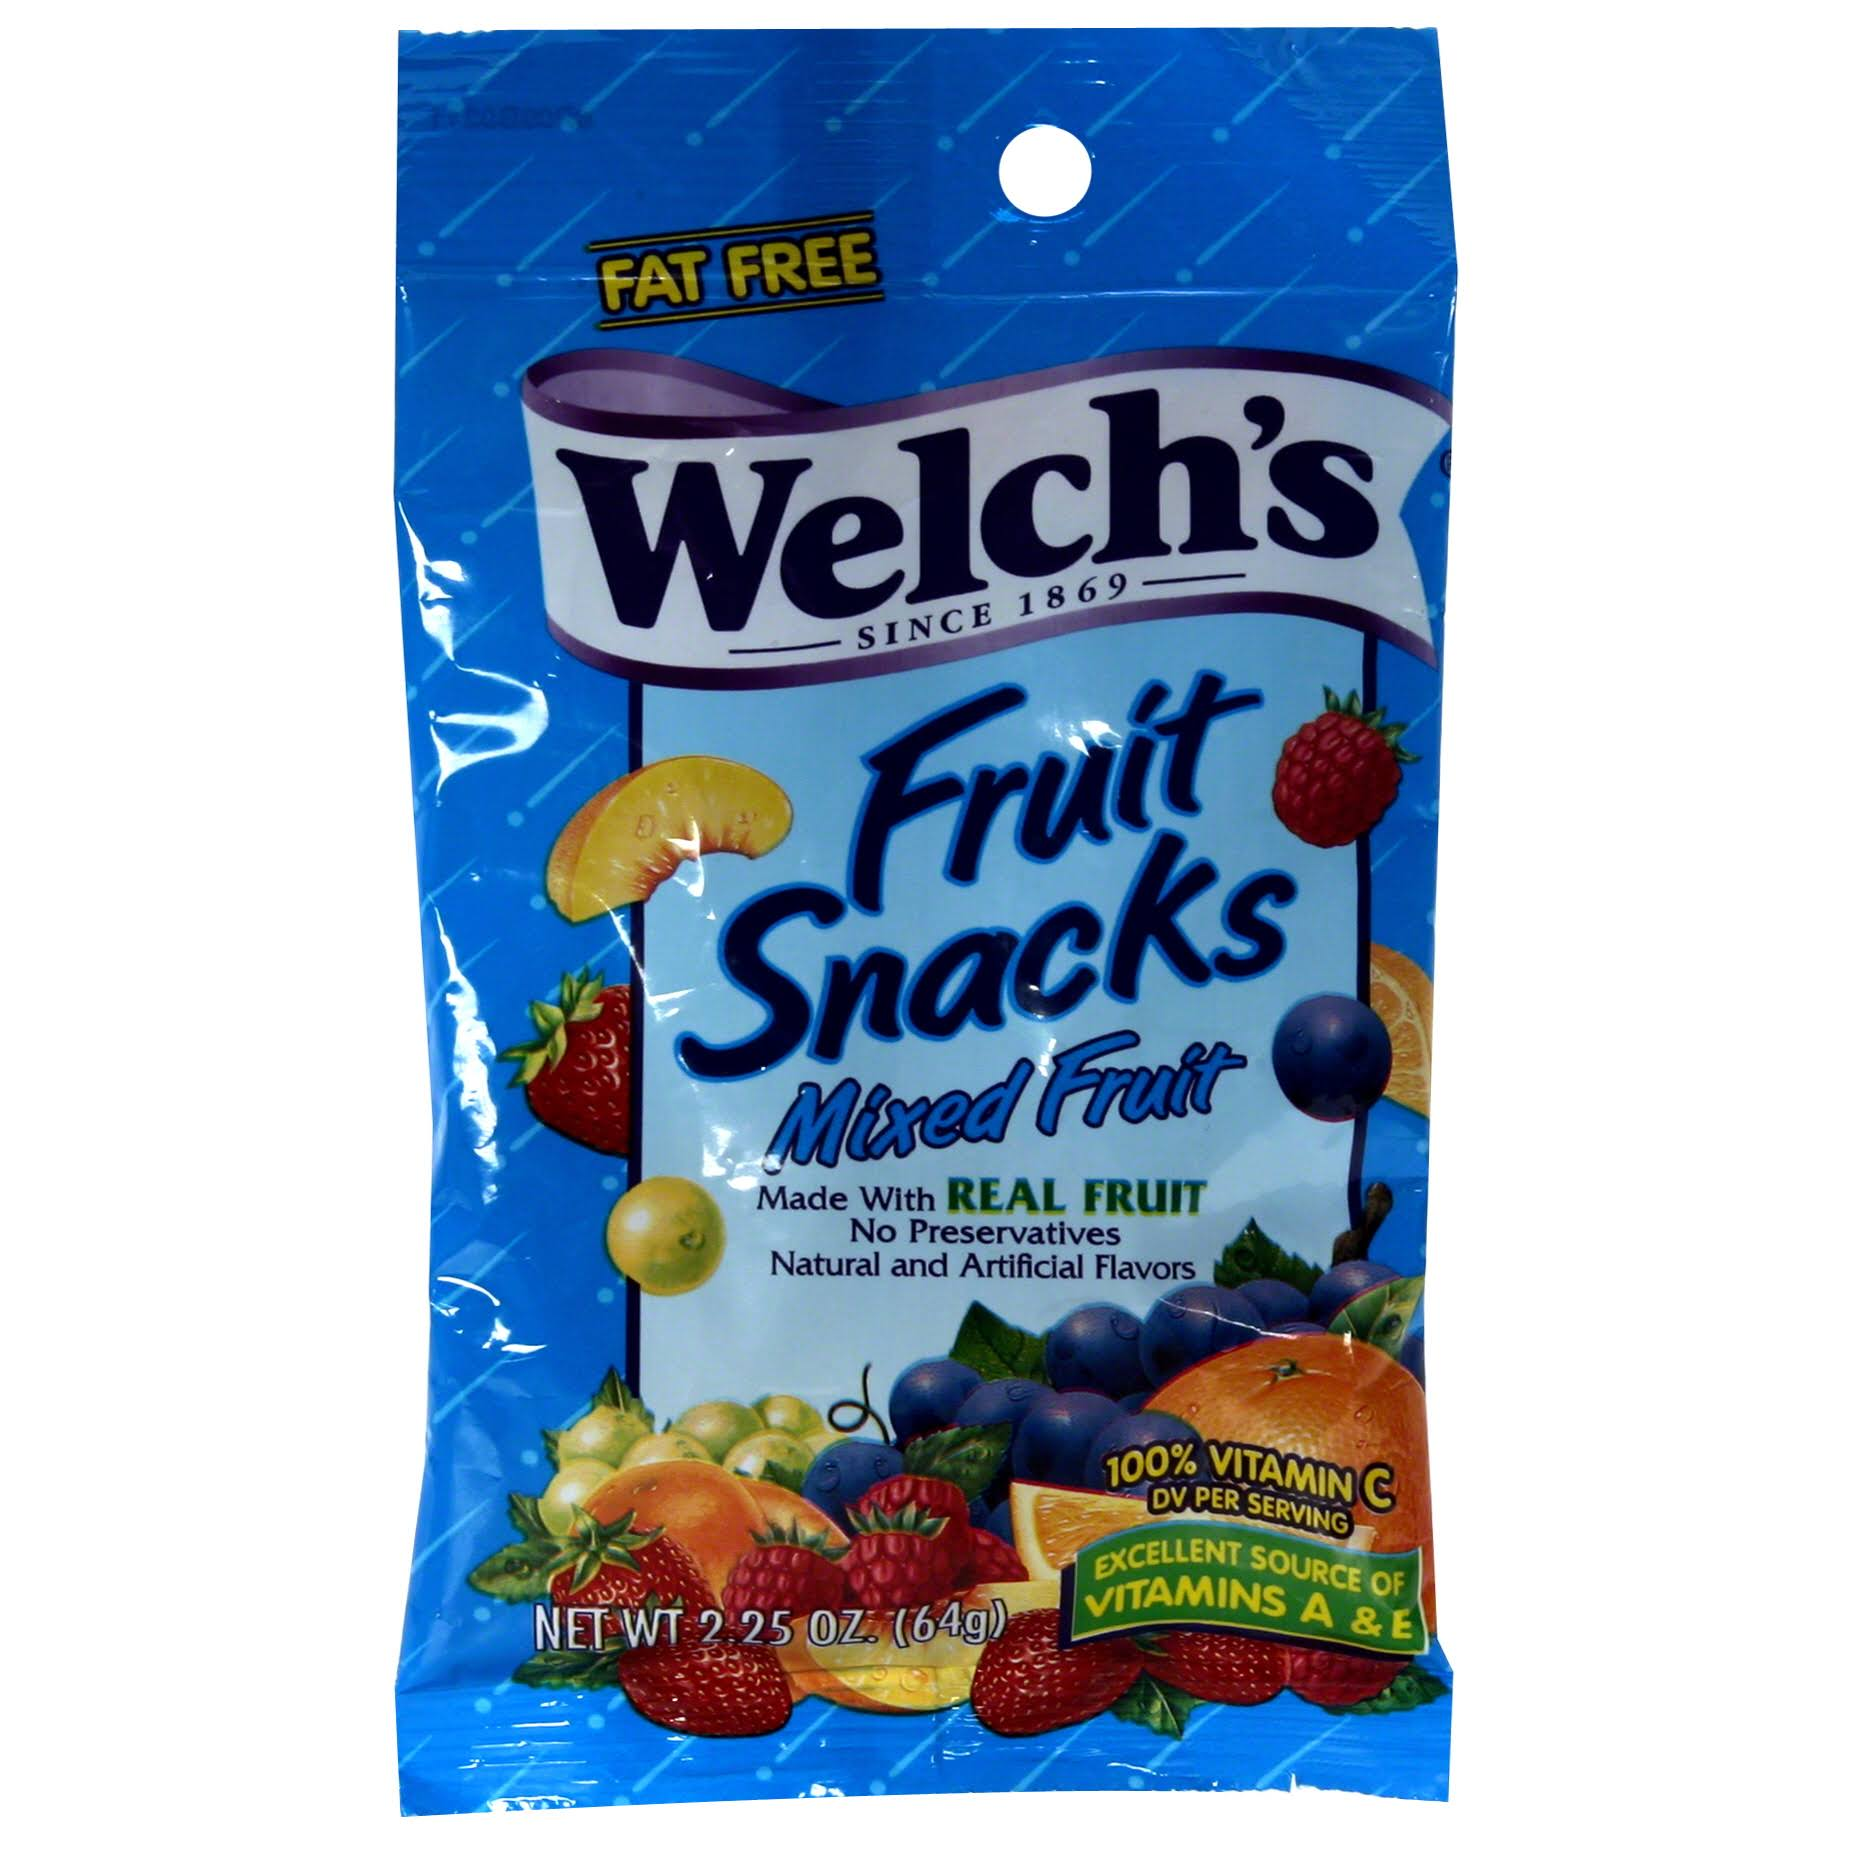 Welch's Fruit Snacks - Mixed Fruit